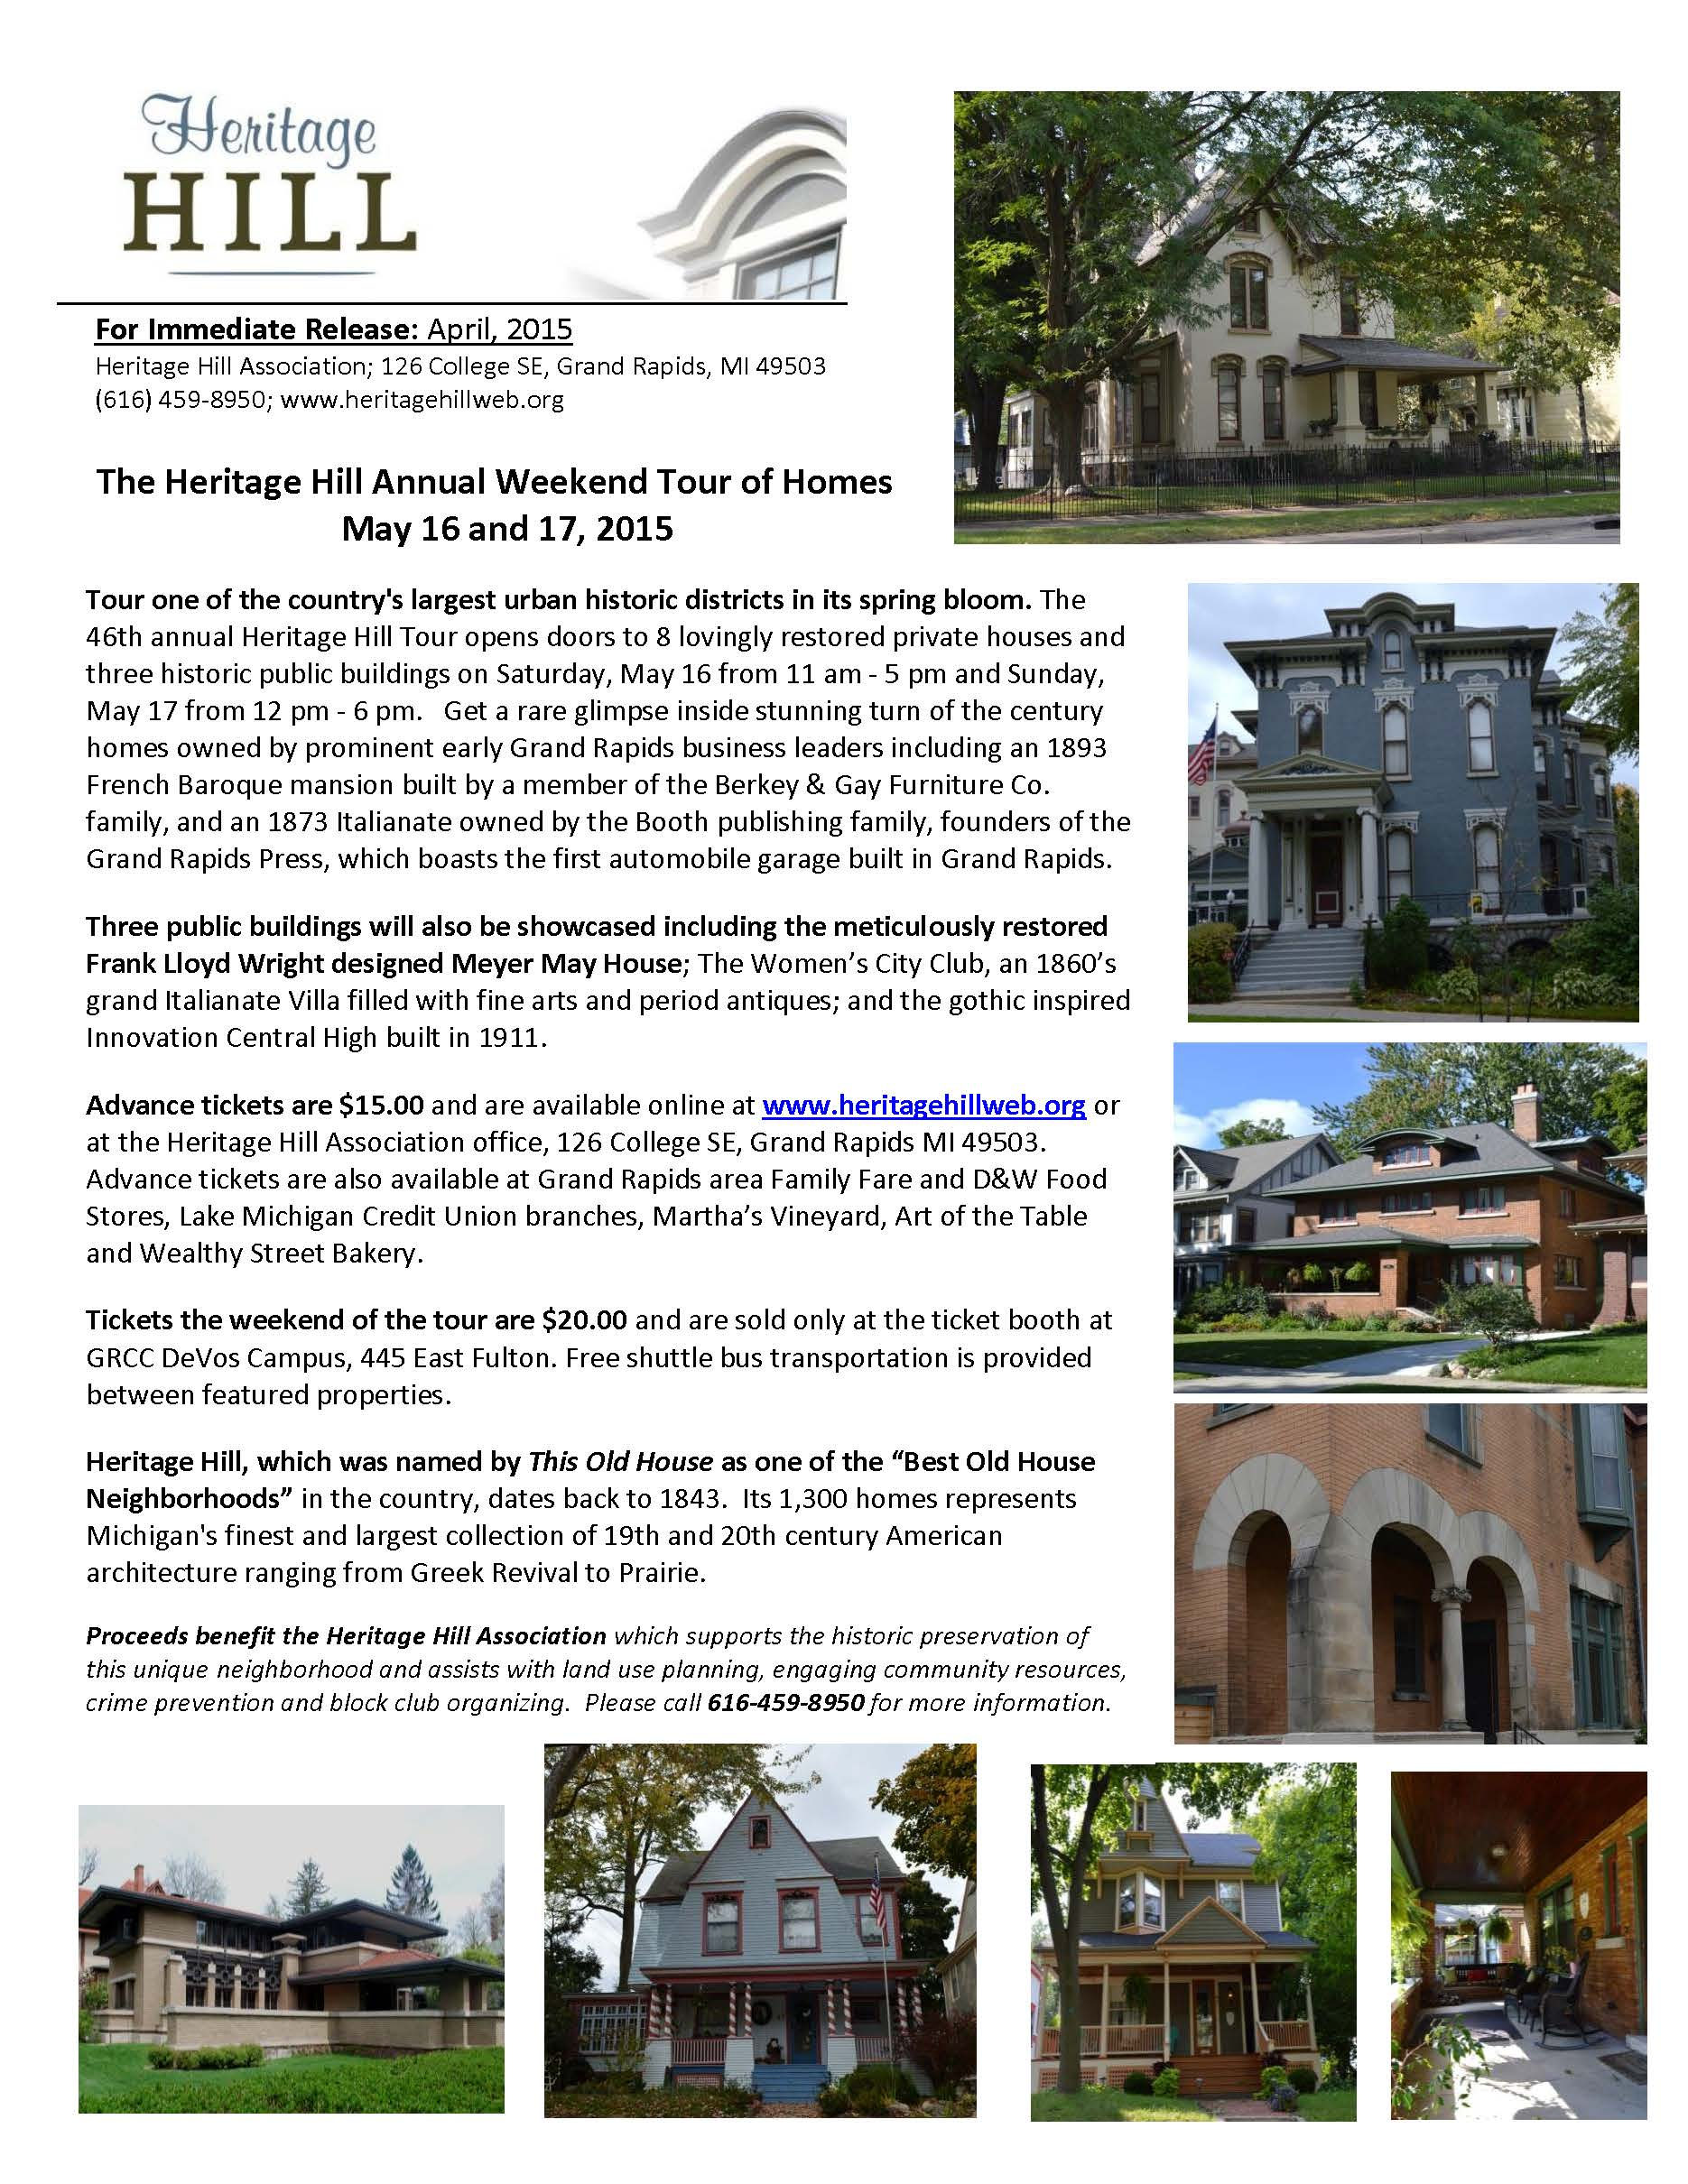 Annual Heritage Hill Weekend Tour of Homes